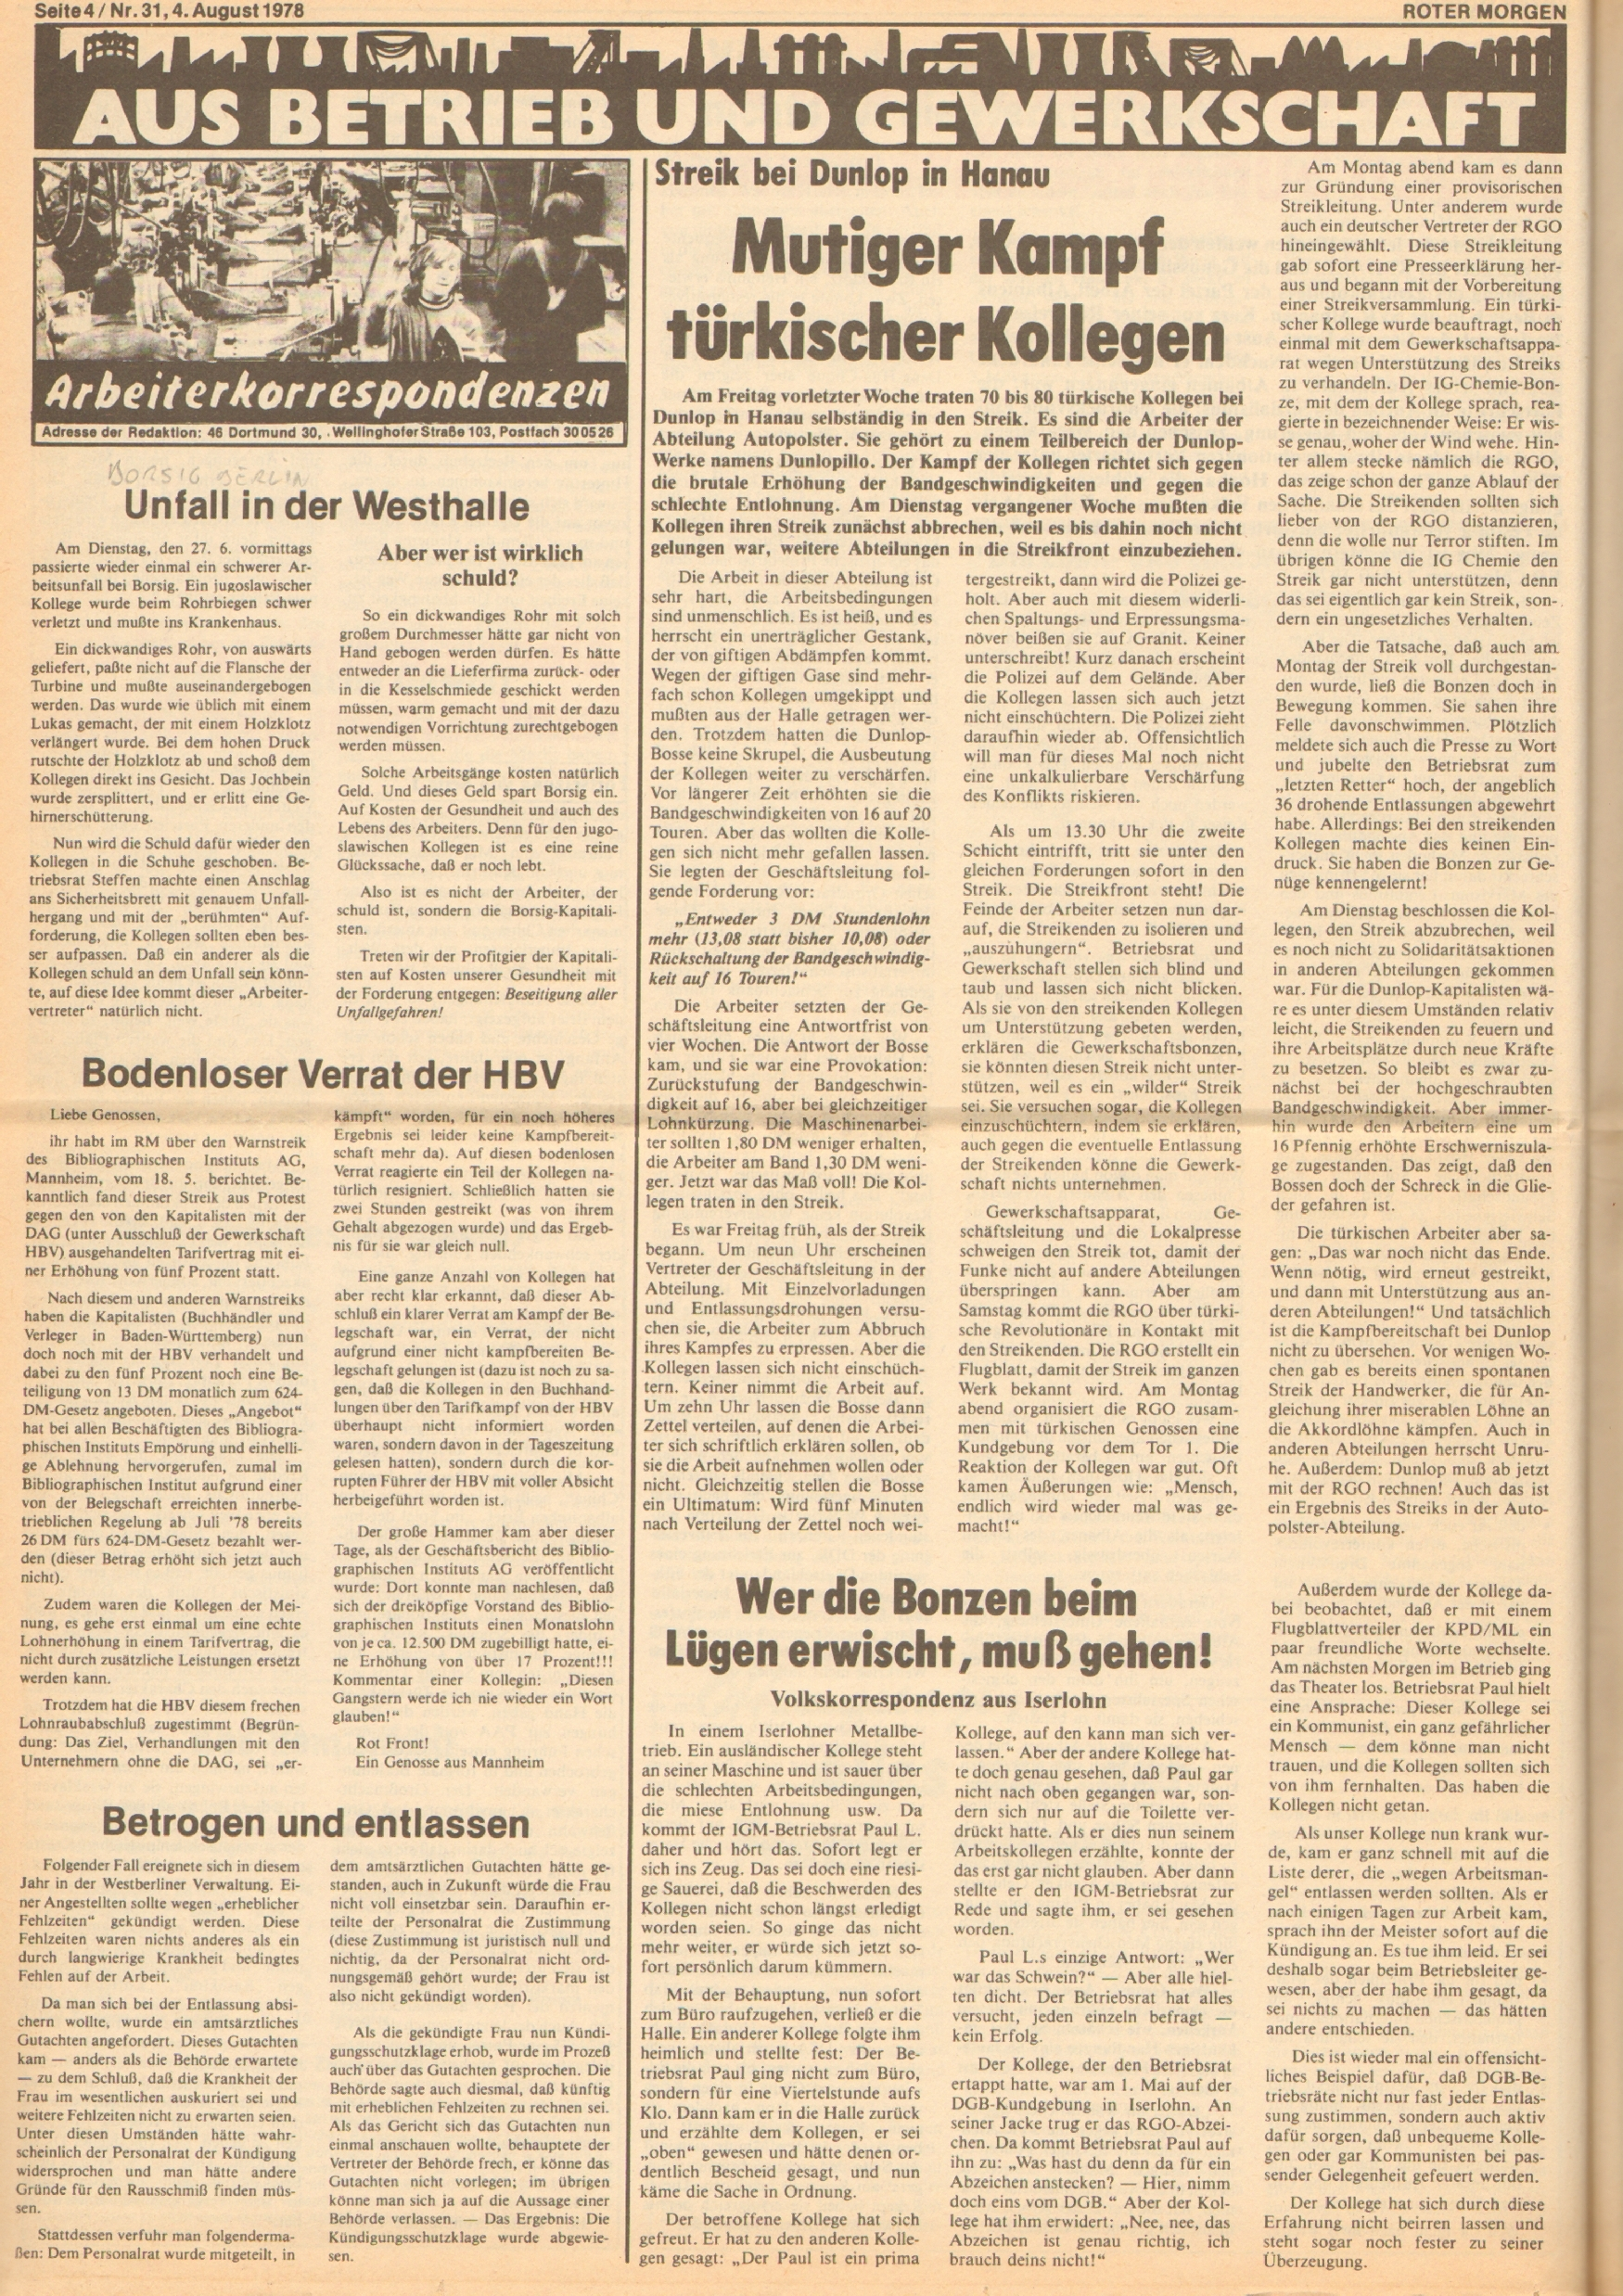 Roter Morgen, 12. Jg., 4. August 1978, Nr. 31, Seite 4